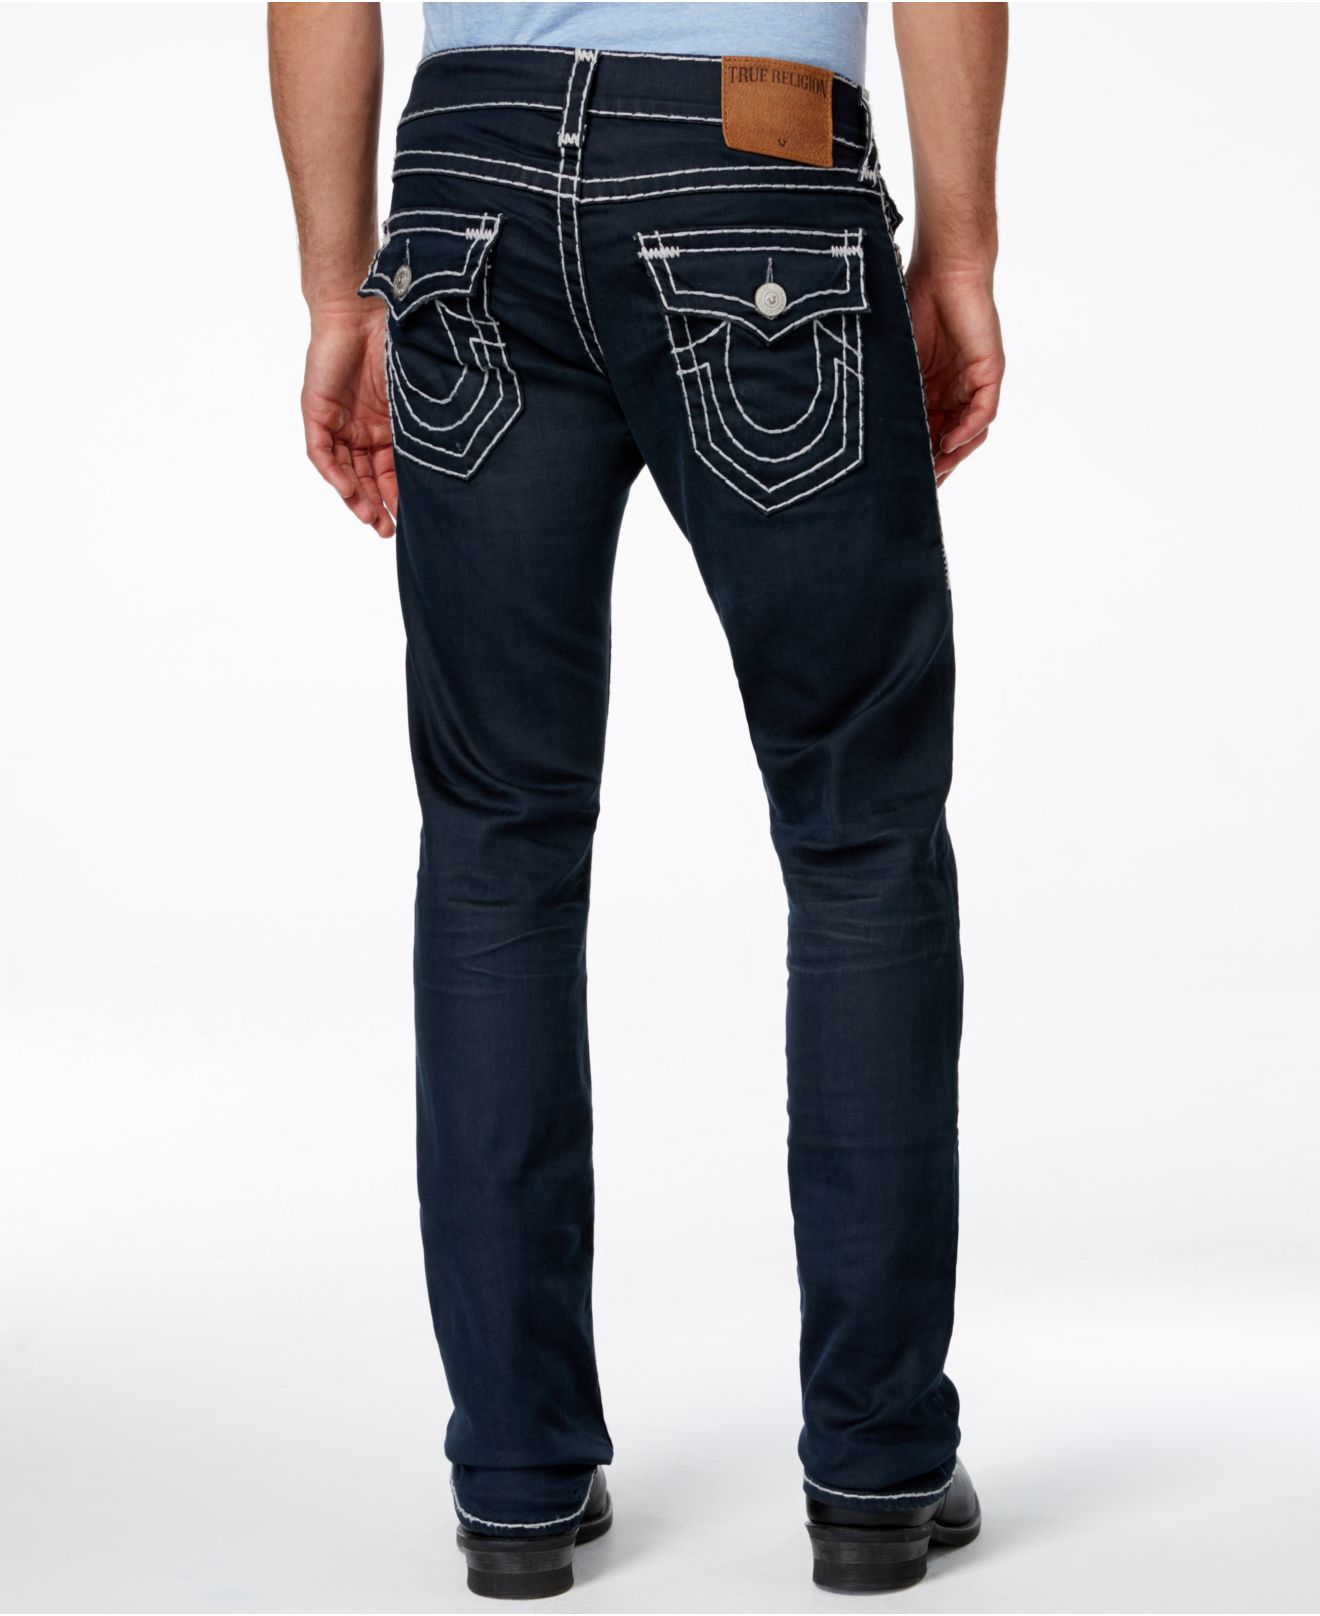 7535952e4 True Religion Men s Ricky Straight-fit Pitch Dark Wash Jeans in Blue ...